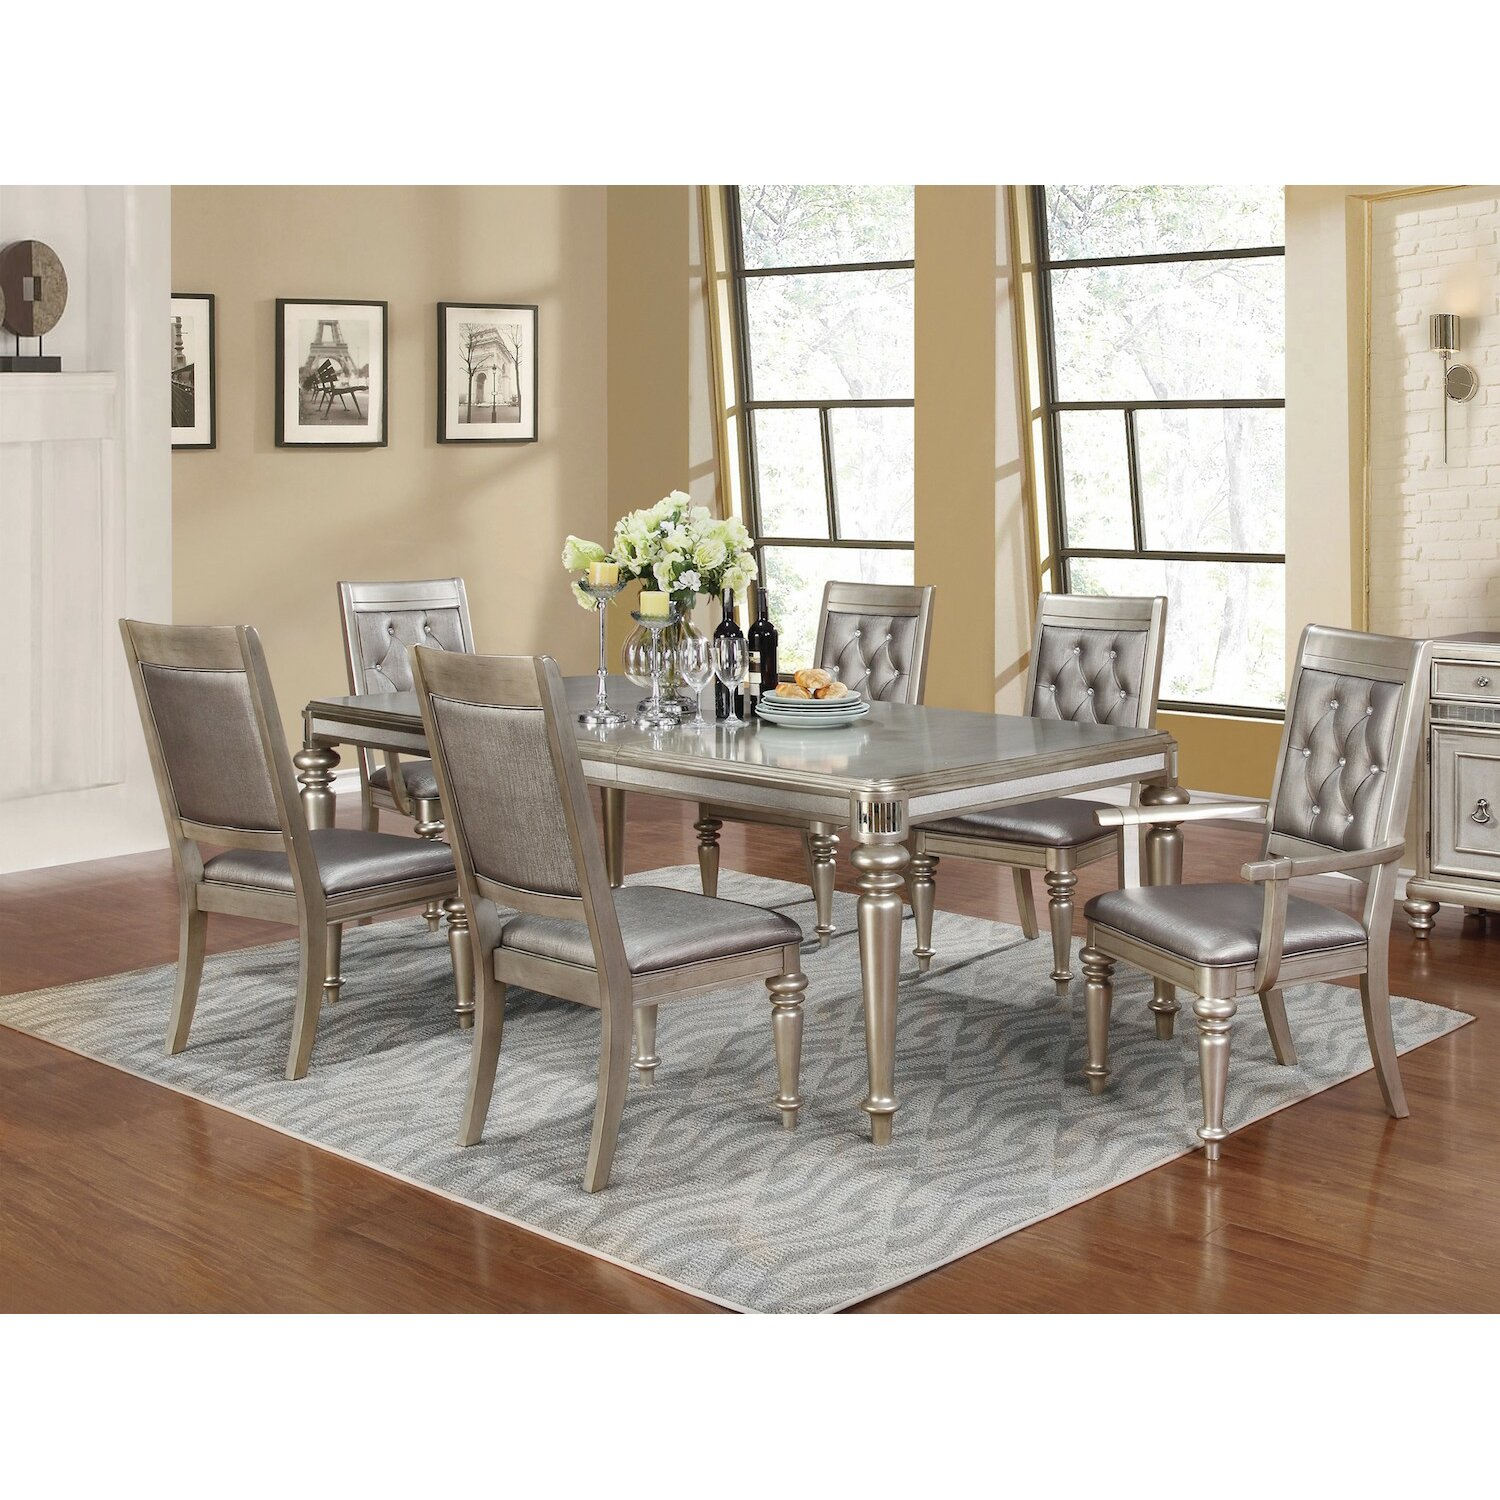 Infini Furnishings Victoria 7 Piece Dining Set & Reviews